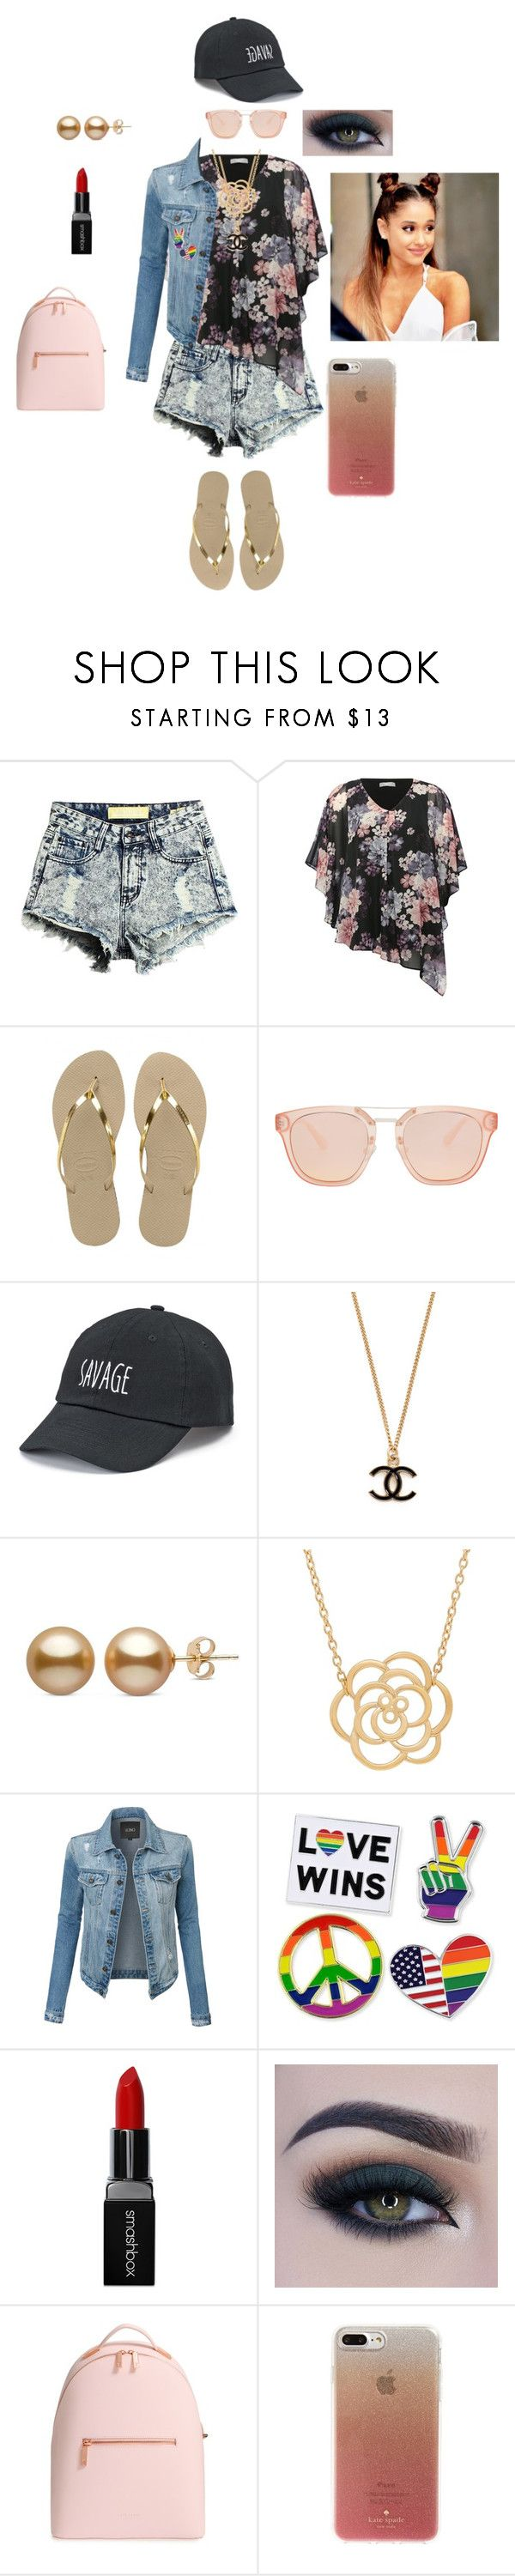 """""""Giselle William's warped tour outfit"""" by lilith2002 on Polyvore featuring M&Co, Havaianas, SO, Lord & Taylor, LE3NO, Smashbox, Too Faced Cosmetics, Ted Baker and Kate Spade"""